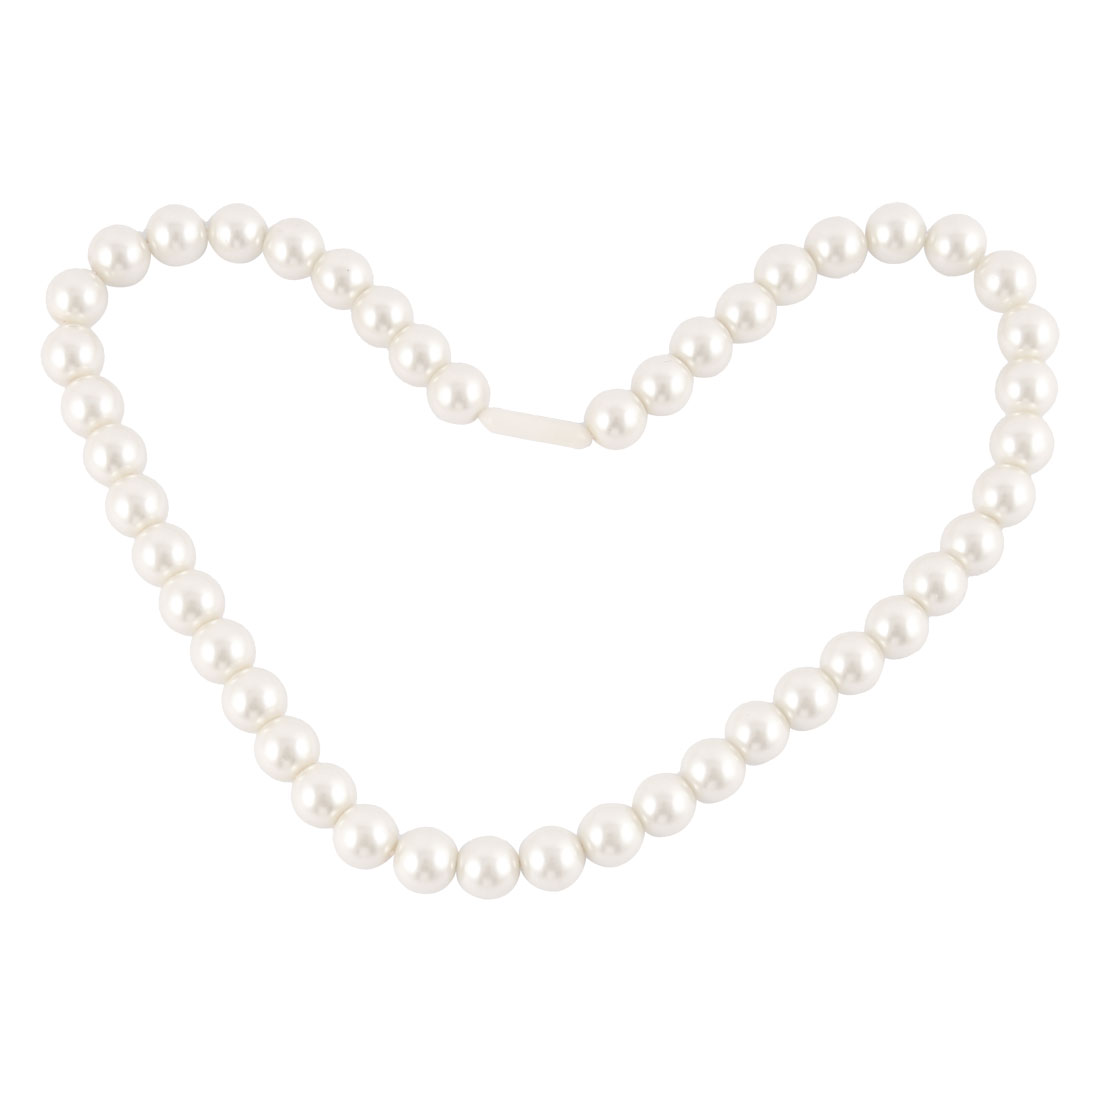 Ladies Manmade Faux Pearl Princess Necklace White w Plastic Screw Clasp